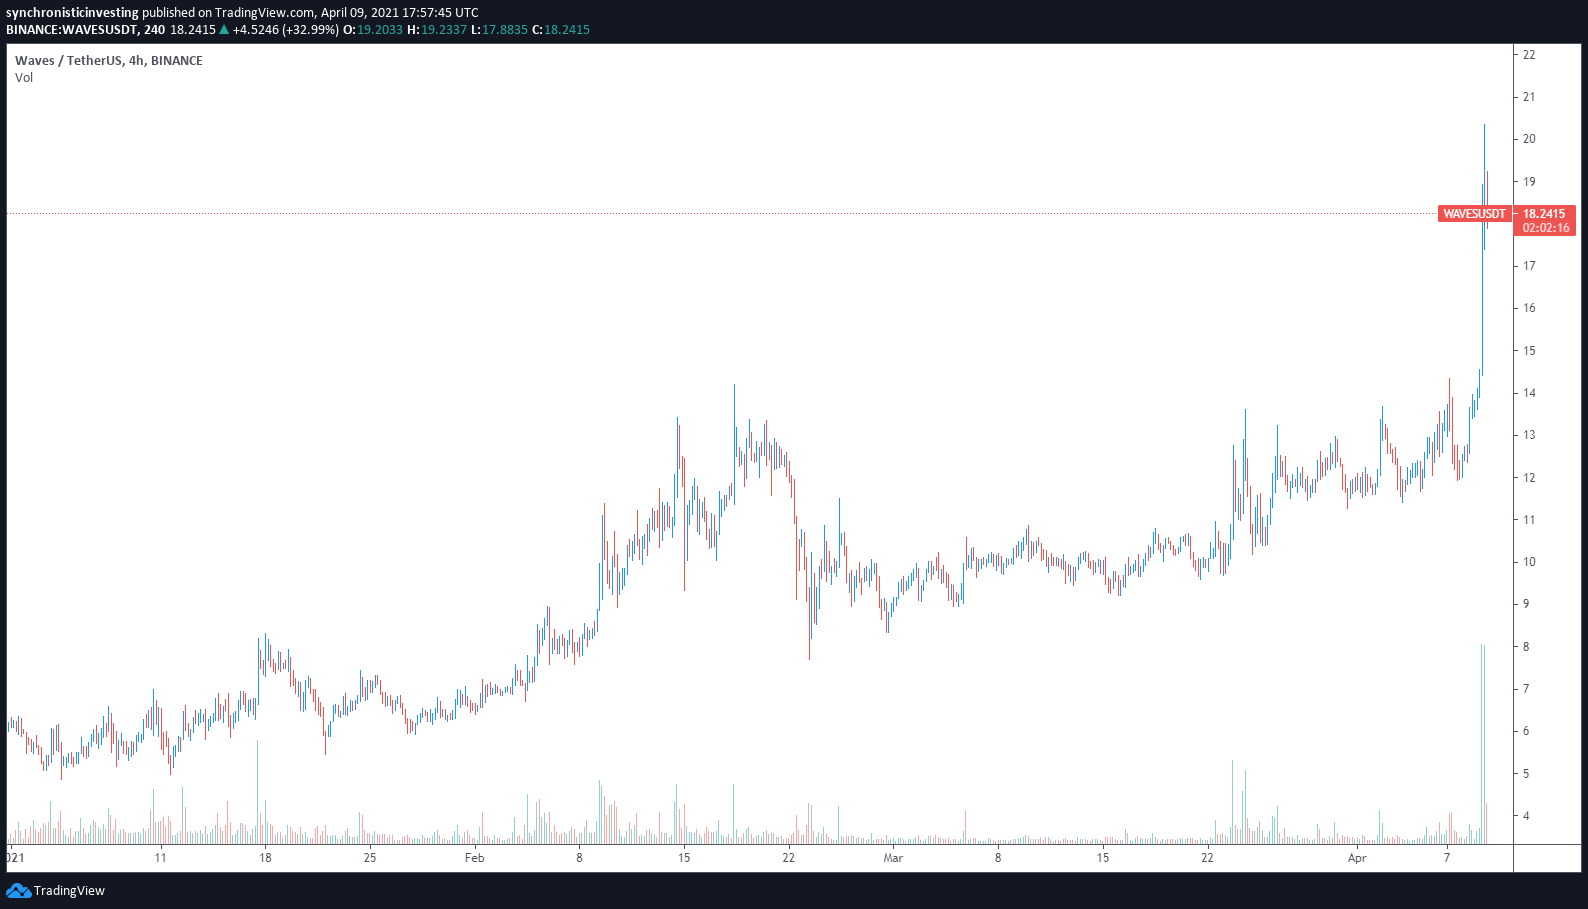 NFT gaming and a tsunami of trading volume lift Waves to a new all-time high